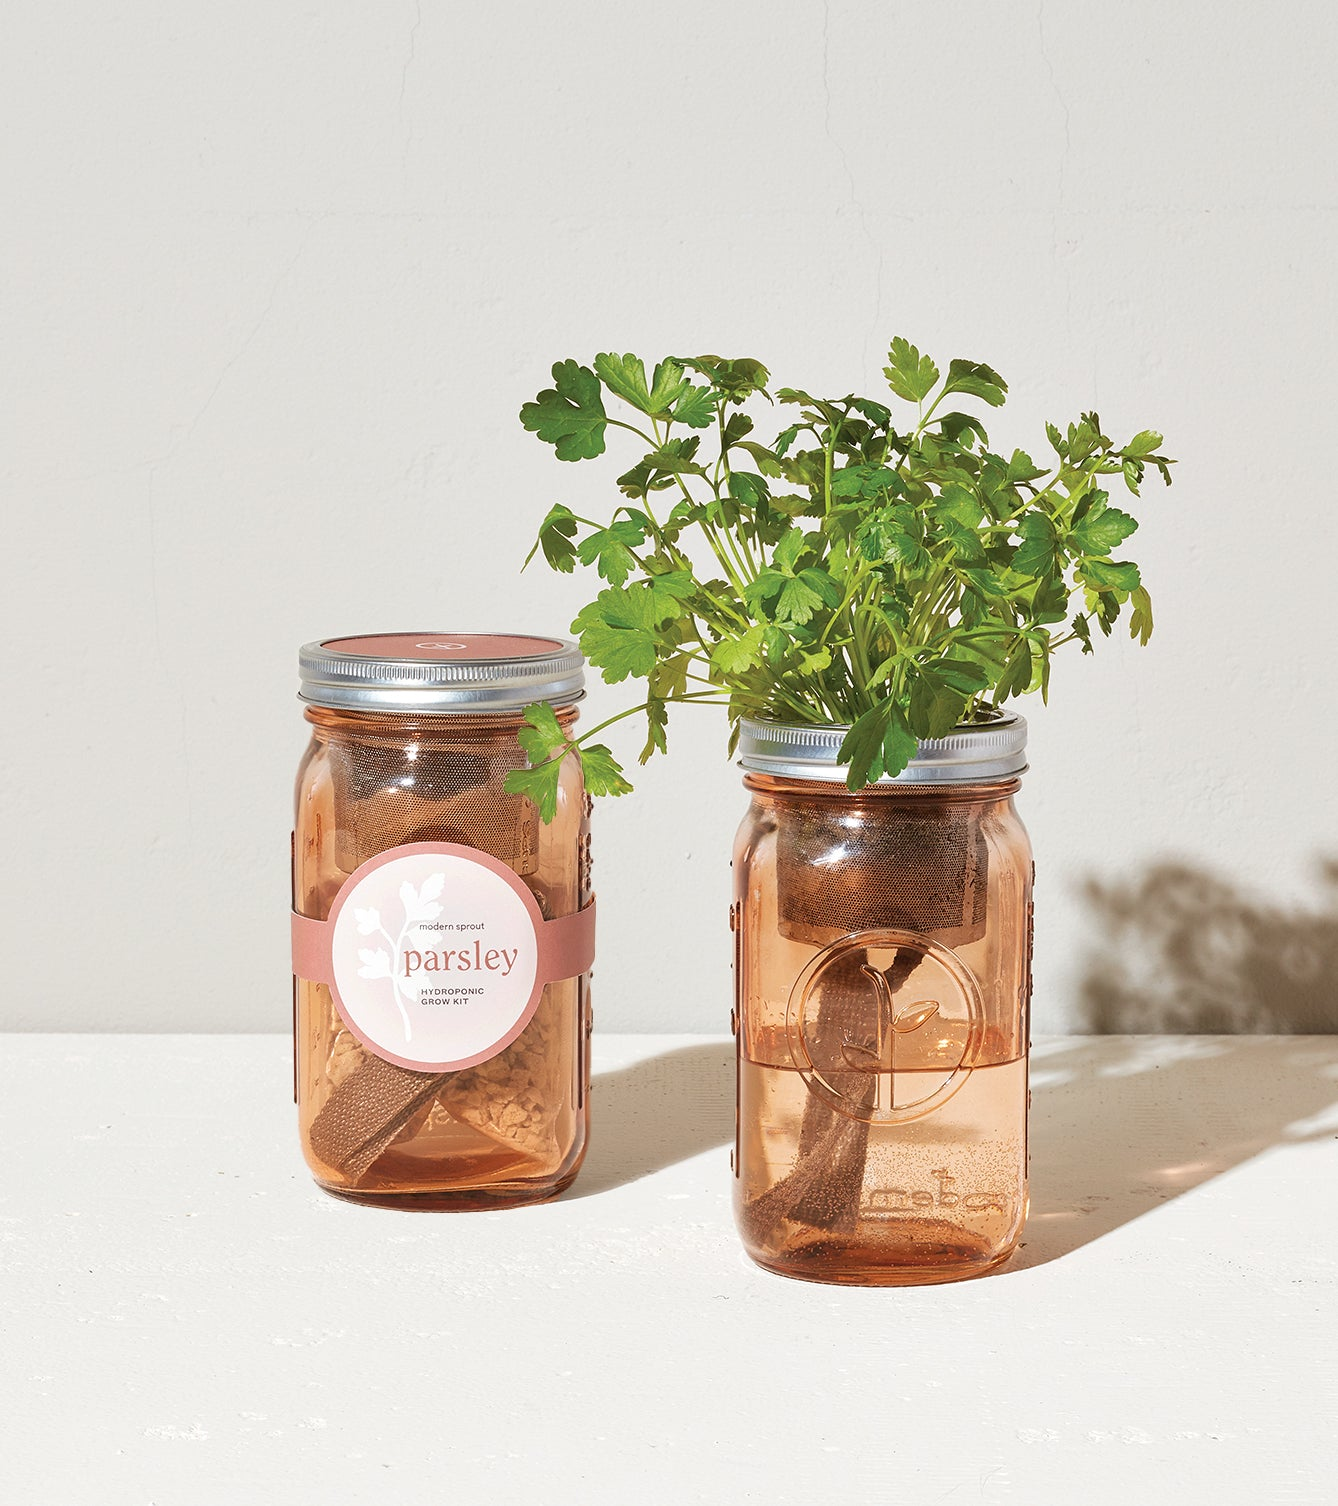 Garden Jar - Parsley